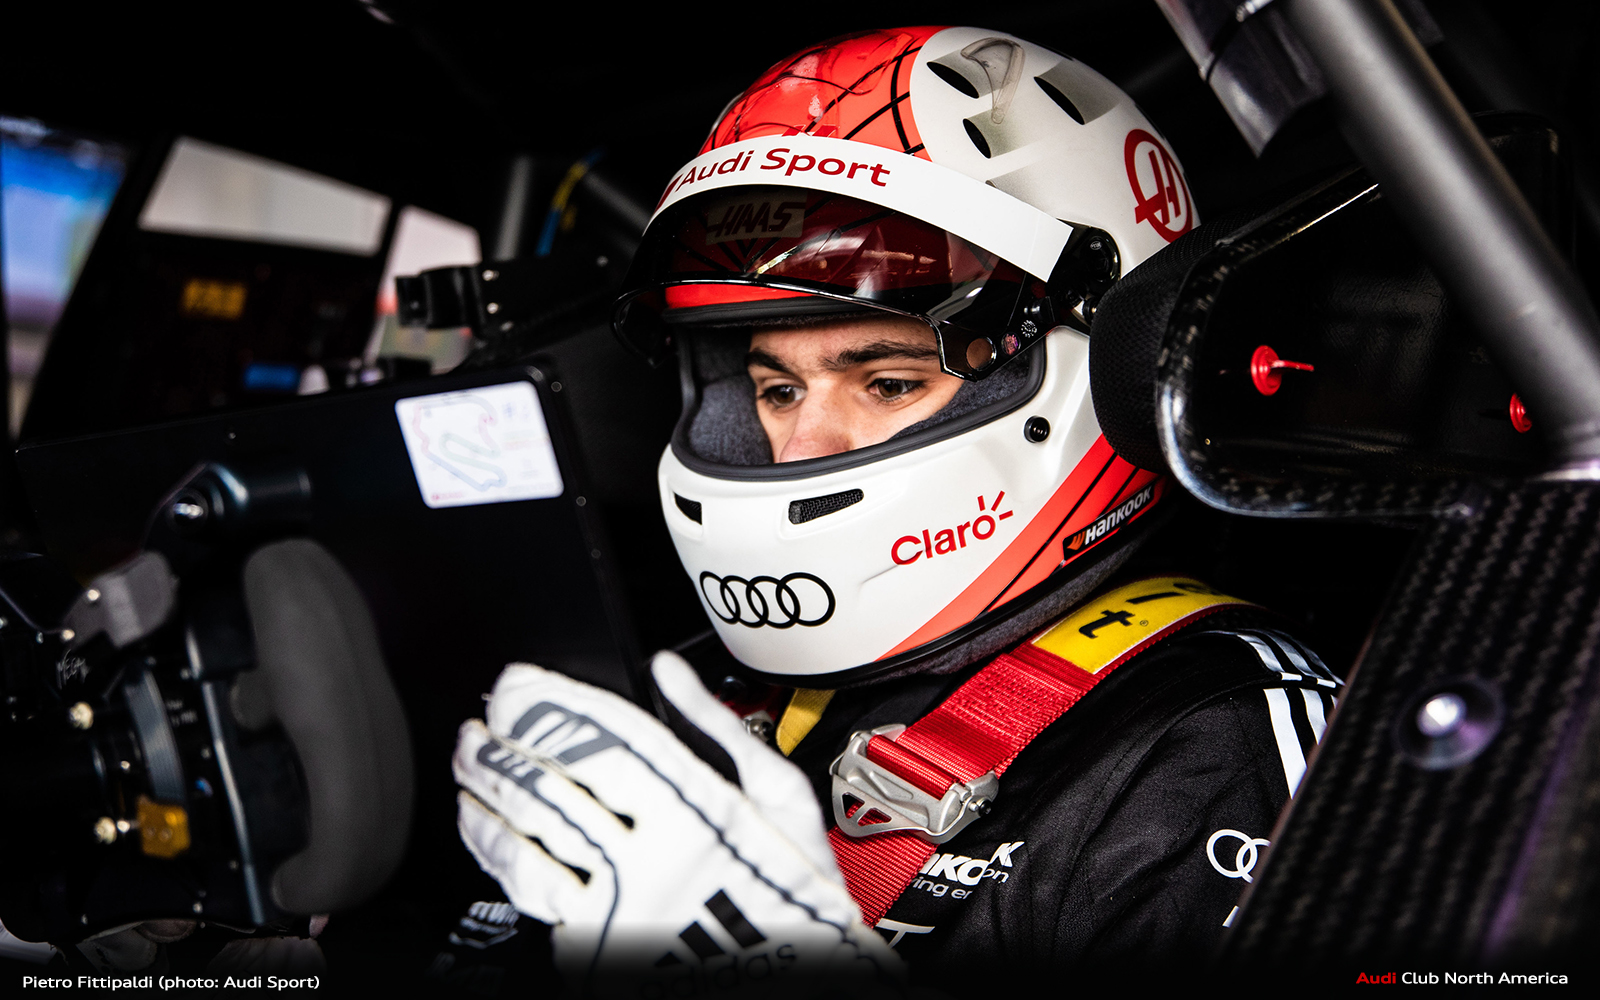 Appendicitis! Pietro Fittipaldi to replace Jamie Green in DTM at